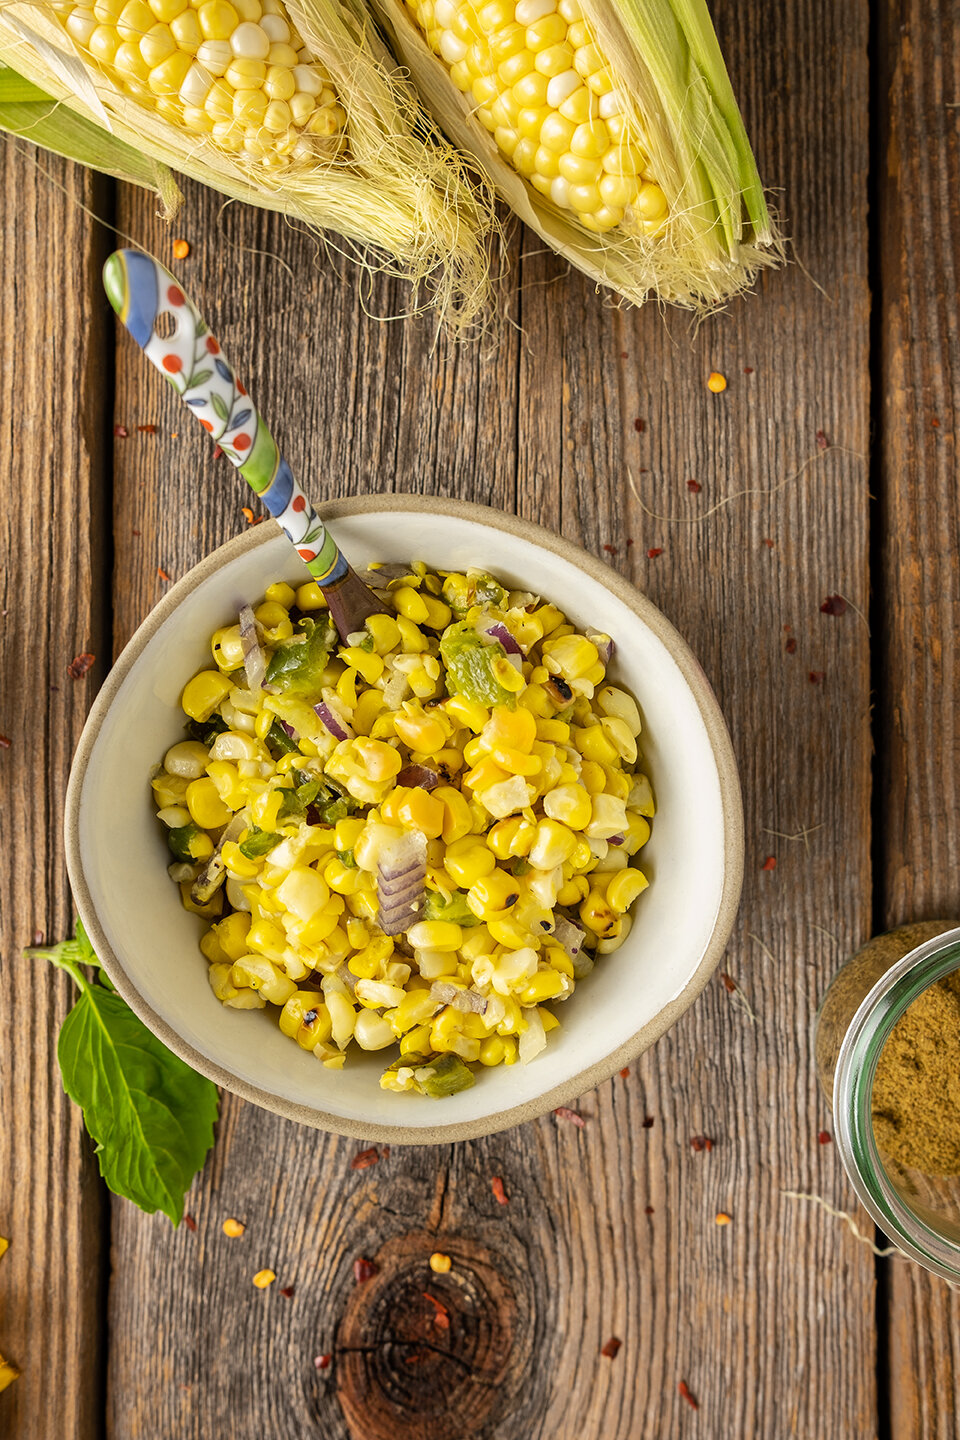 Small bowl of corn relish with colorful spoon and corn on the cob.